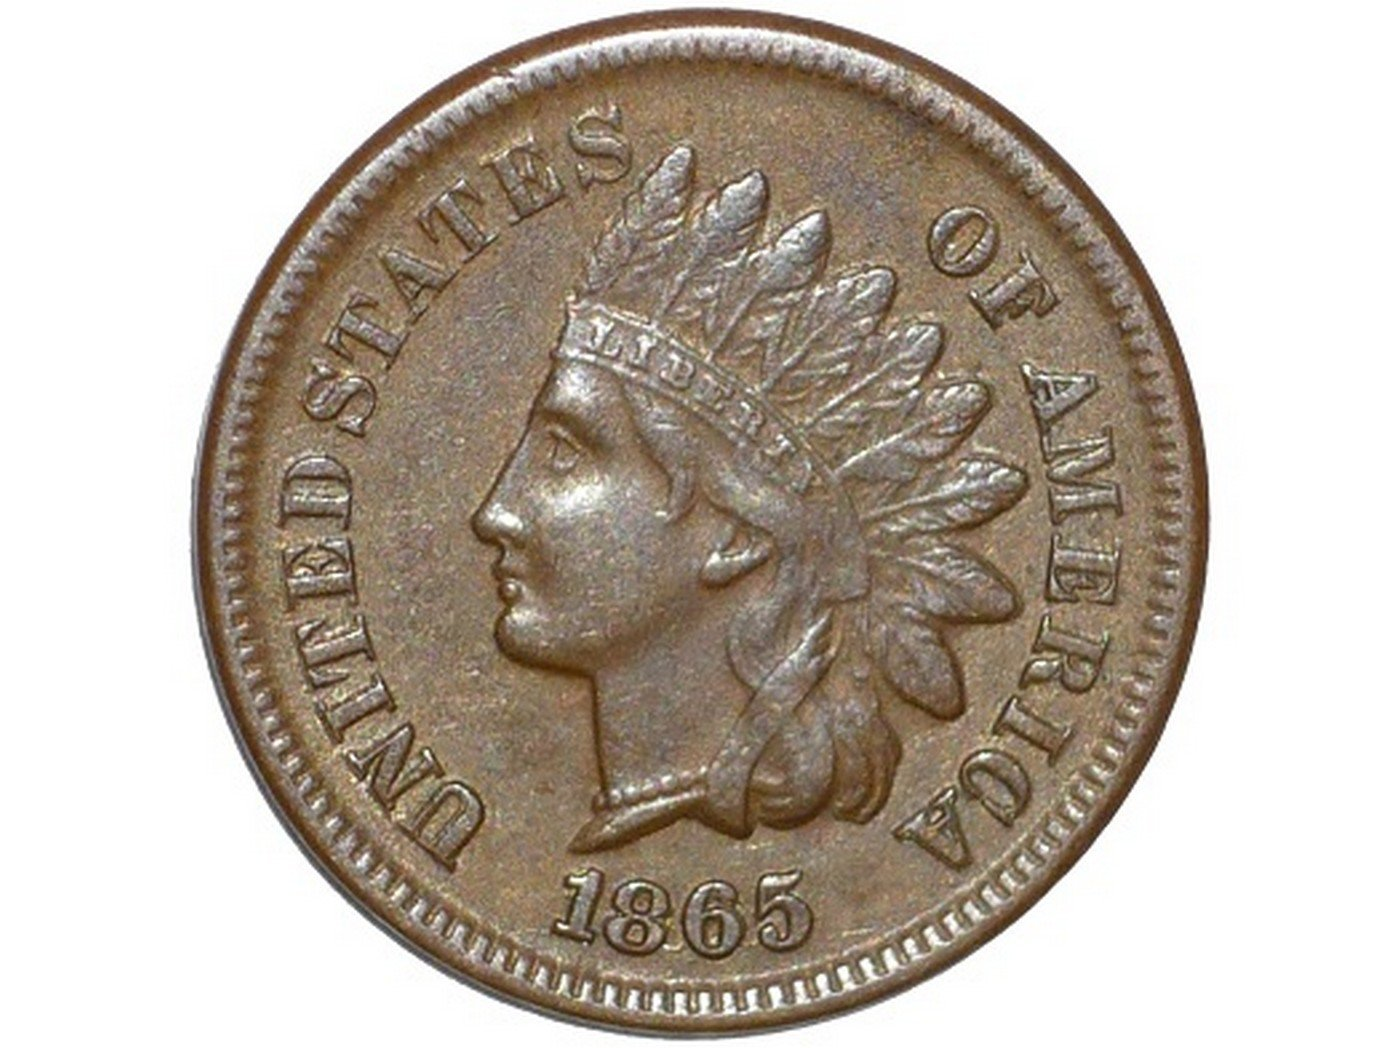 1865 Plain 5 RPD-002 - Indian Head Penny - Photo by David Poliquin